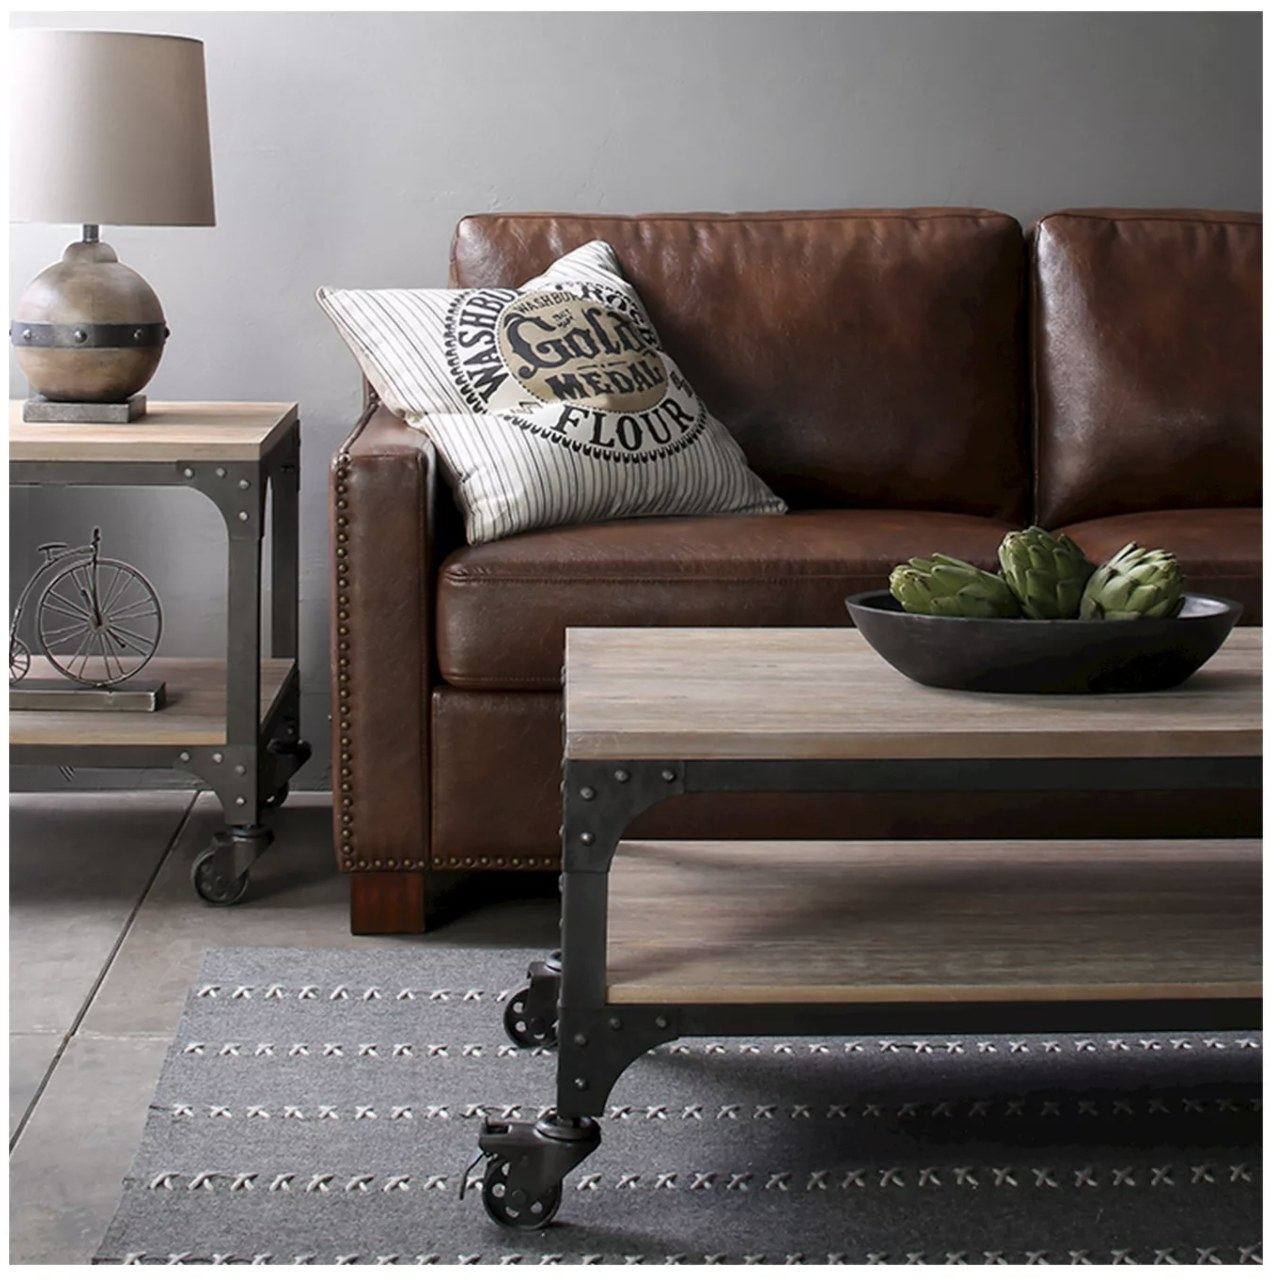 The wood coffee table with metal accents